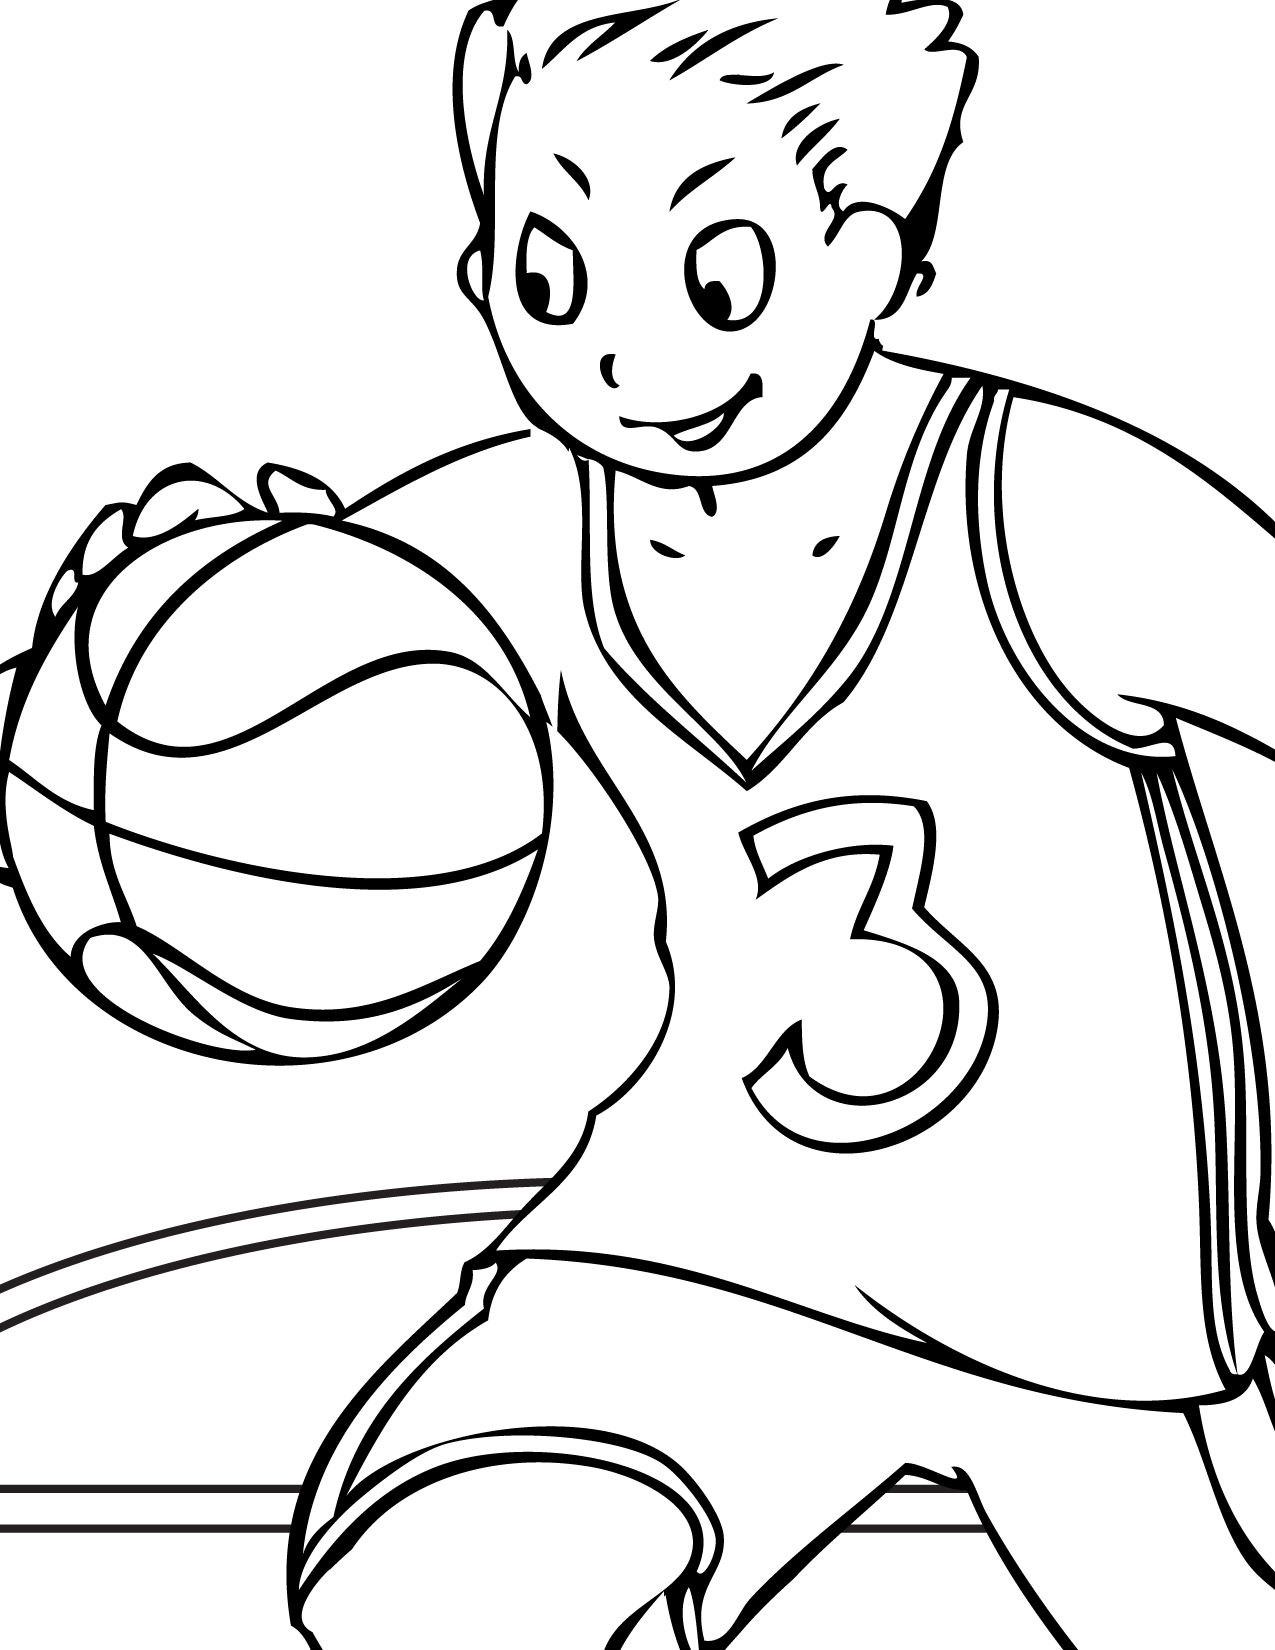 coloring pages onlinw - photo#7